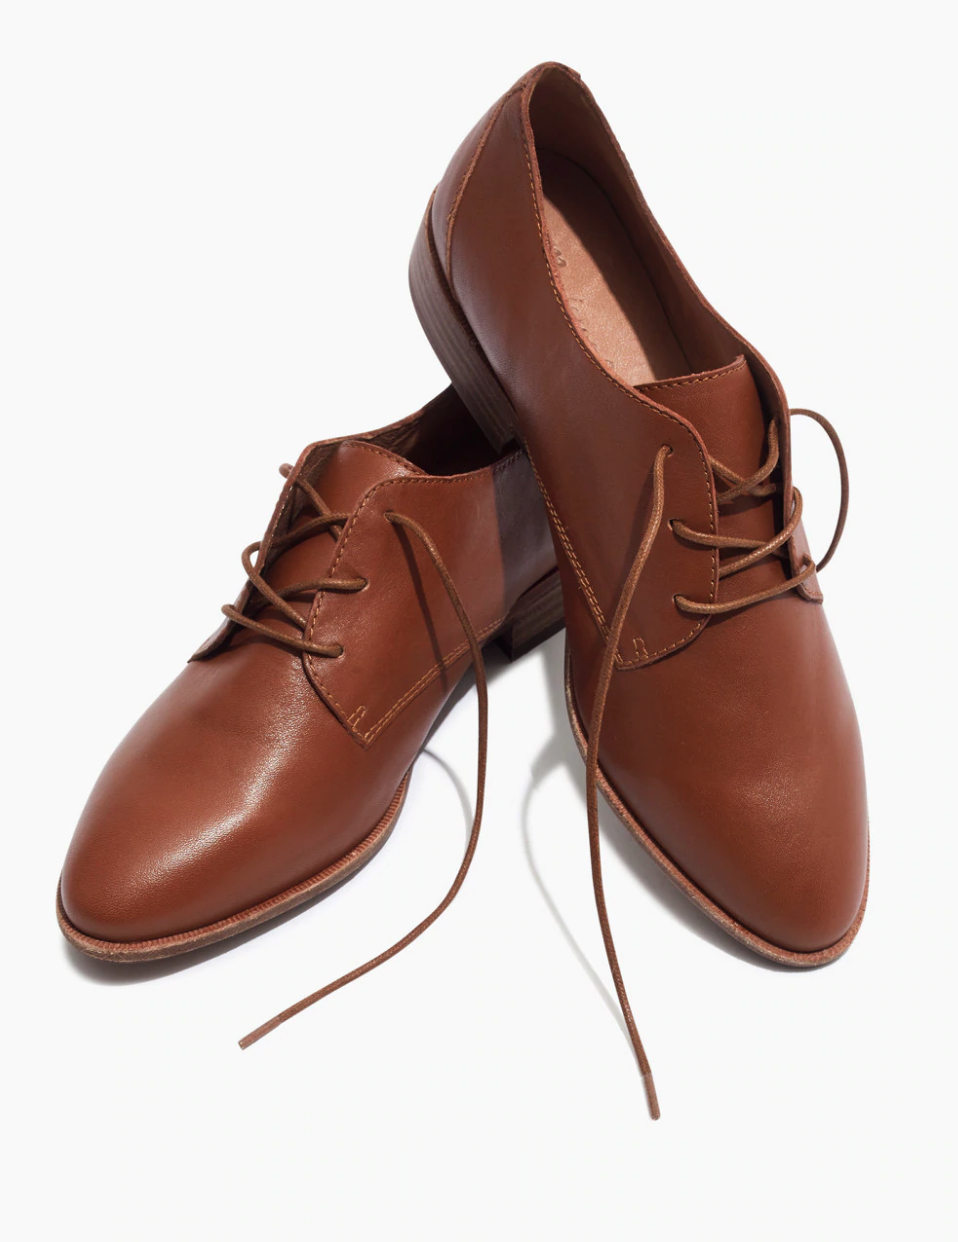 The Frances Oxford English Suede